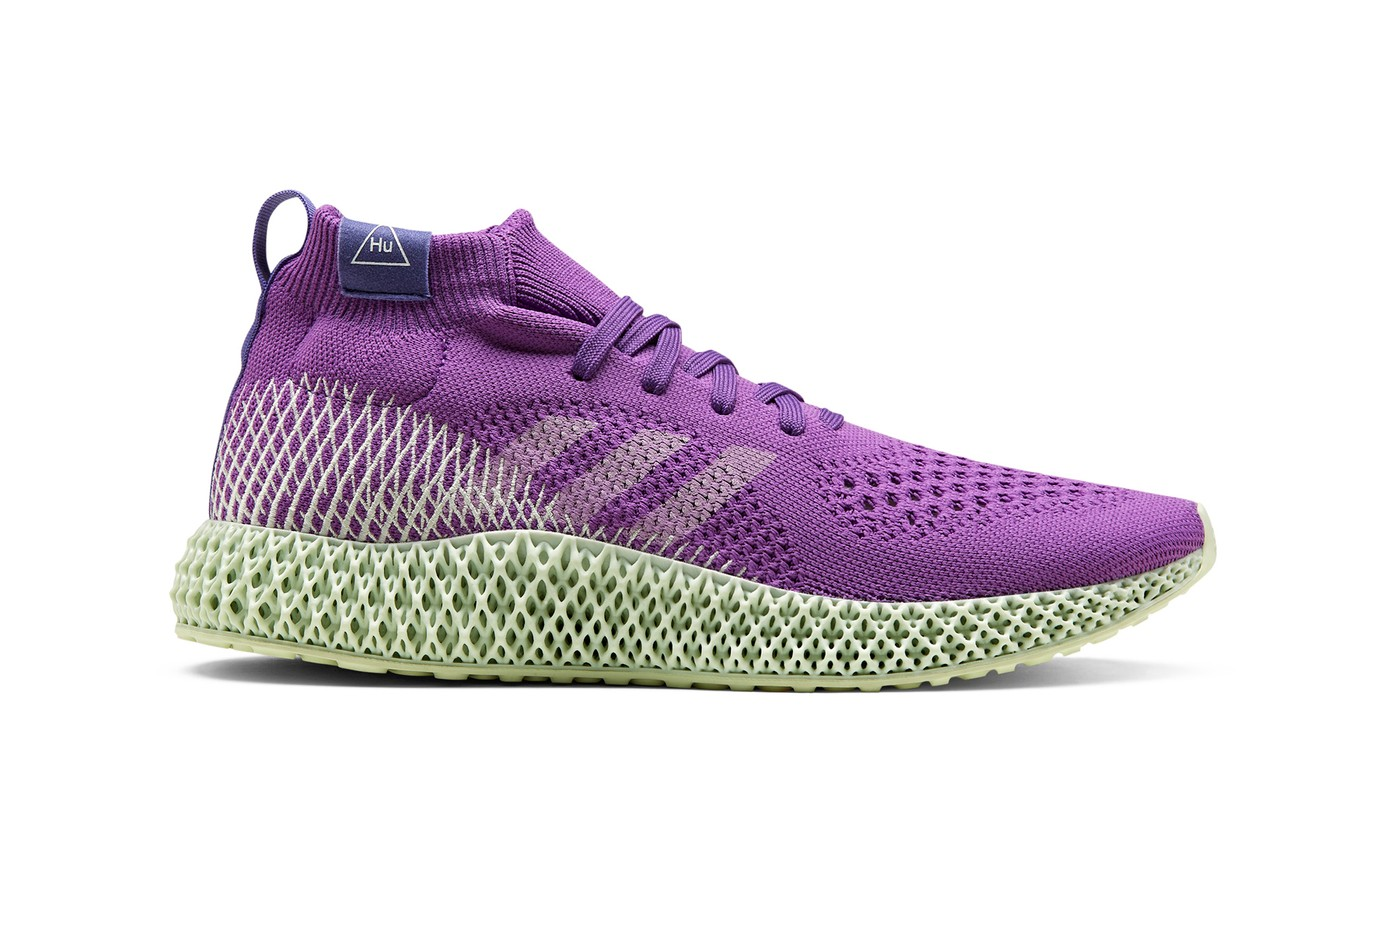 adidas Originals 正式发布 Pharrell Williams 4D Runner